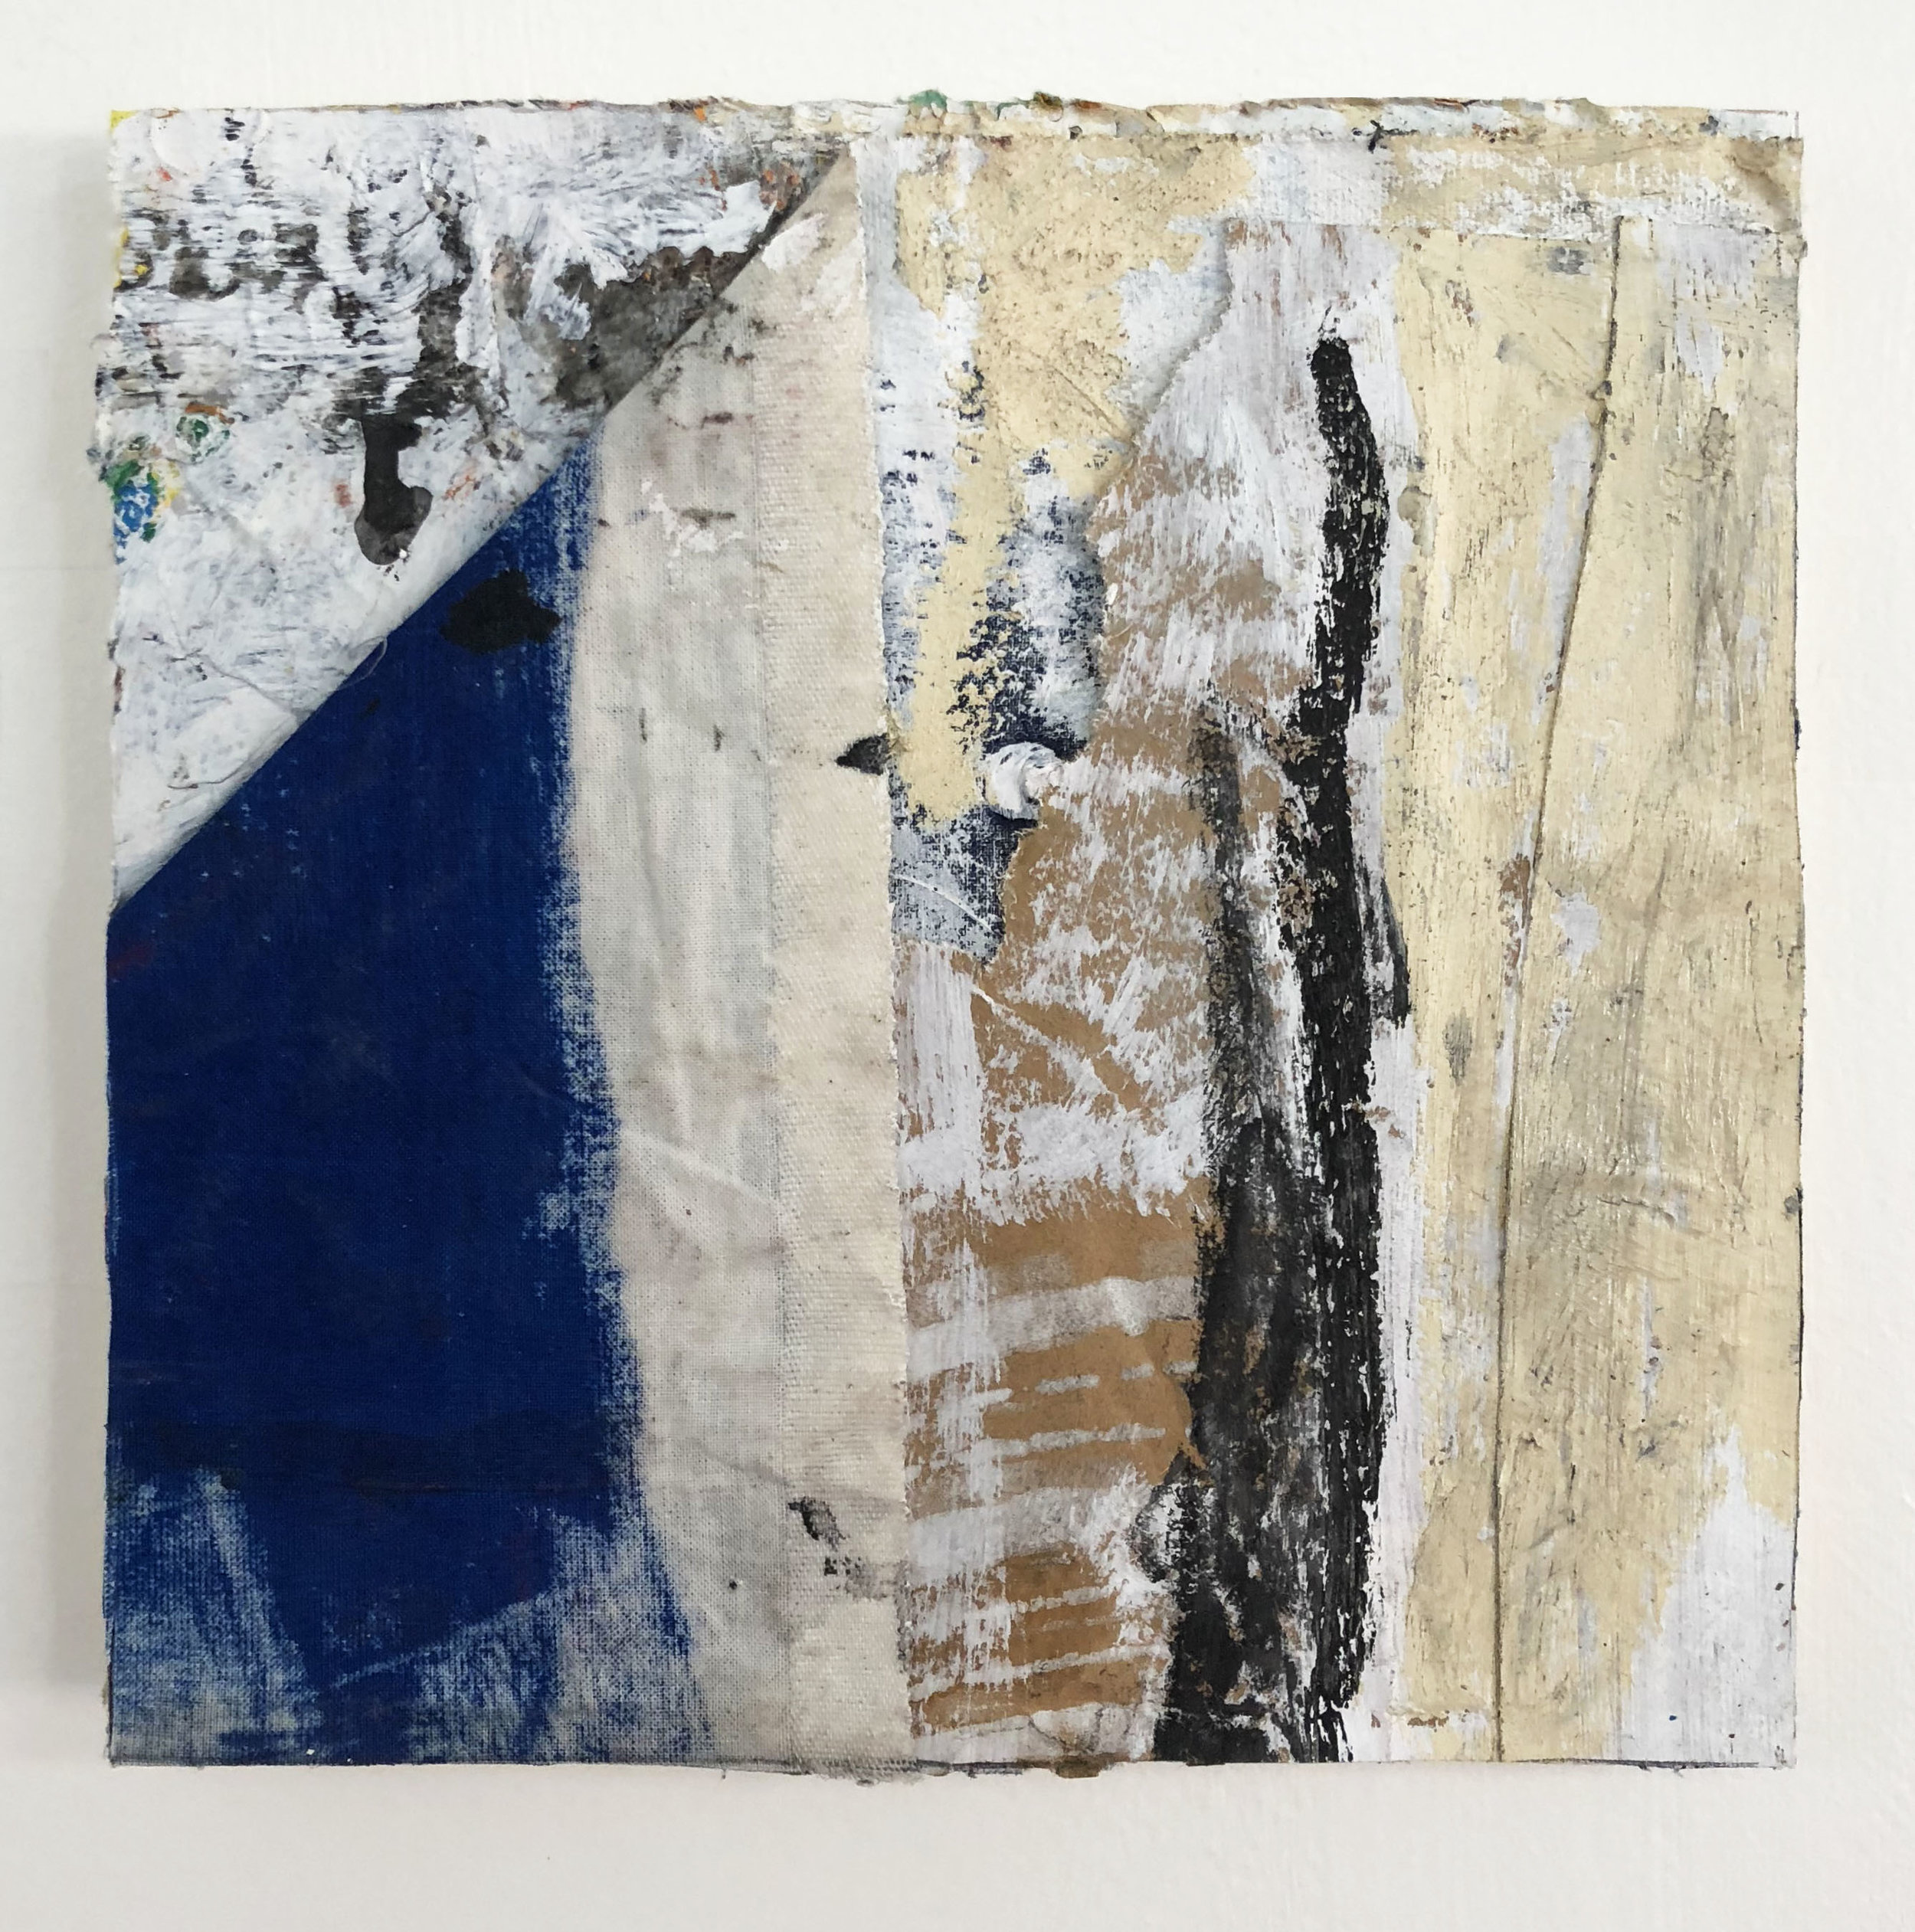 Blue Facade,  2016-18, Collage, charcoal, acrylic, oil, ink, canvas, conté, on panel